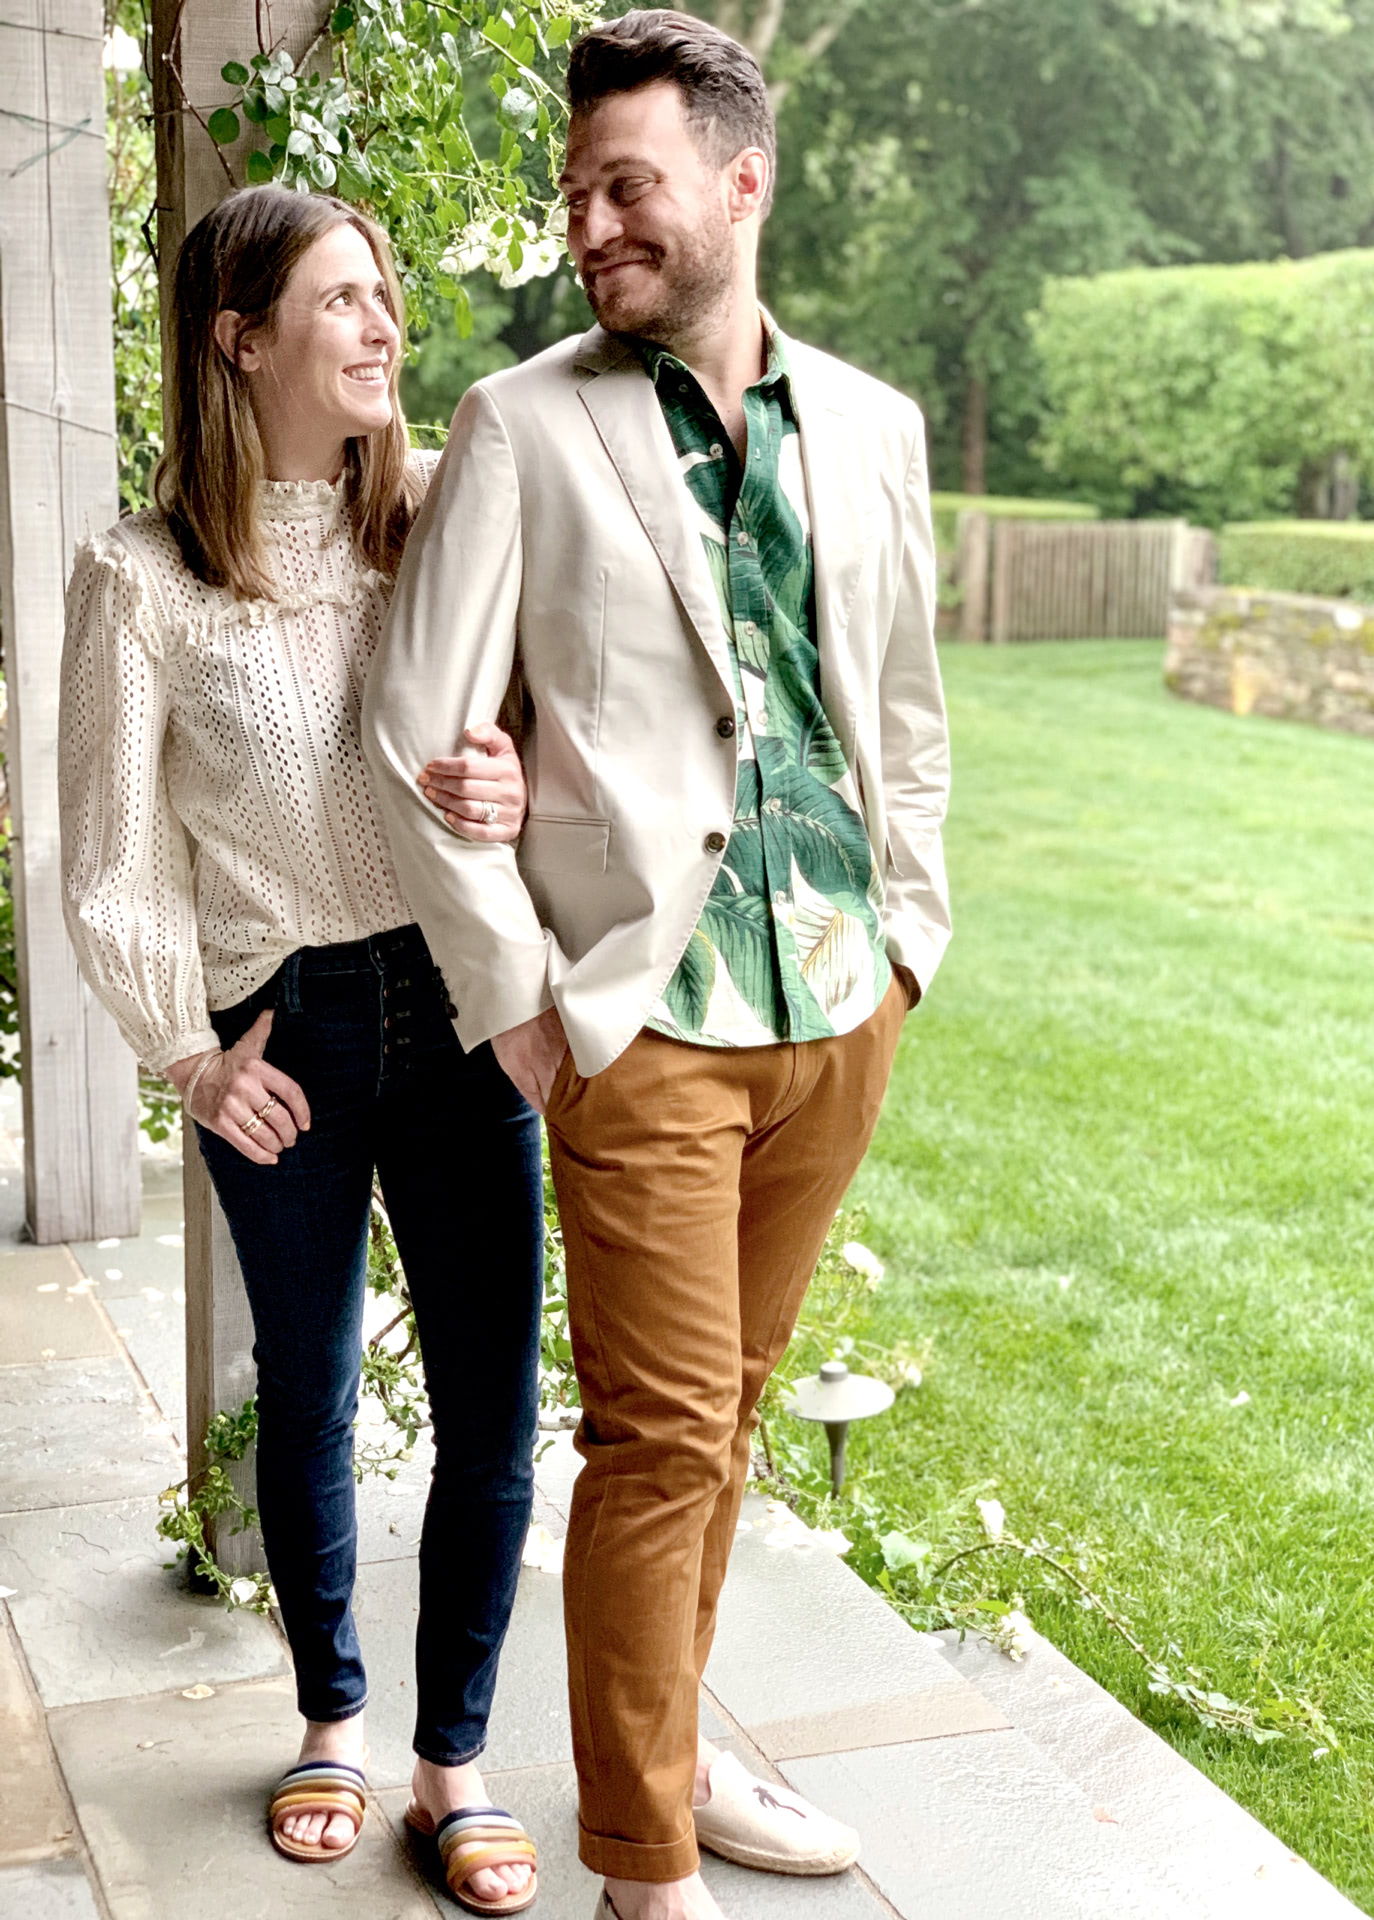 Haley Weidenbaum and her husband walking along a path | Everhem